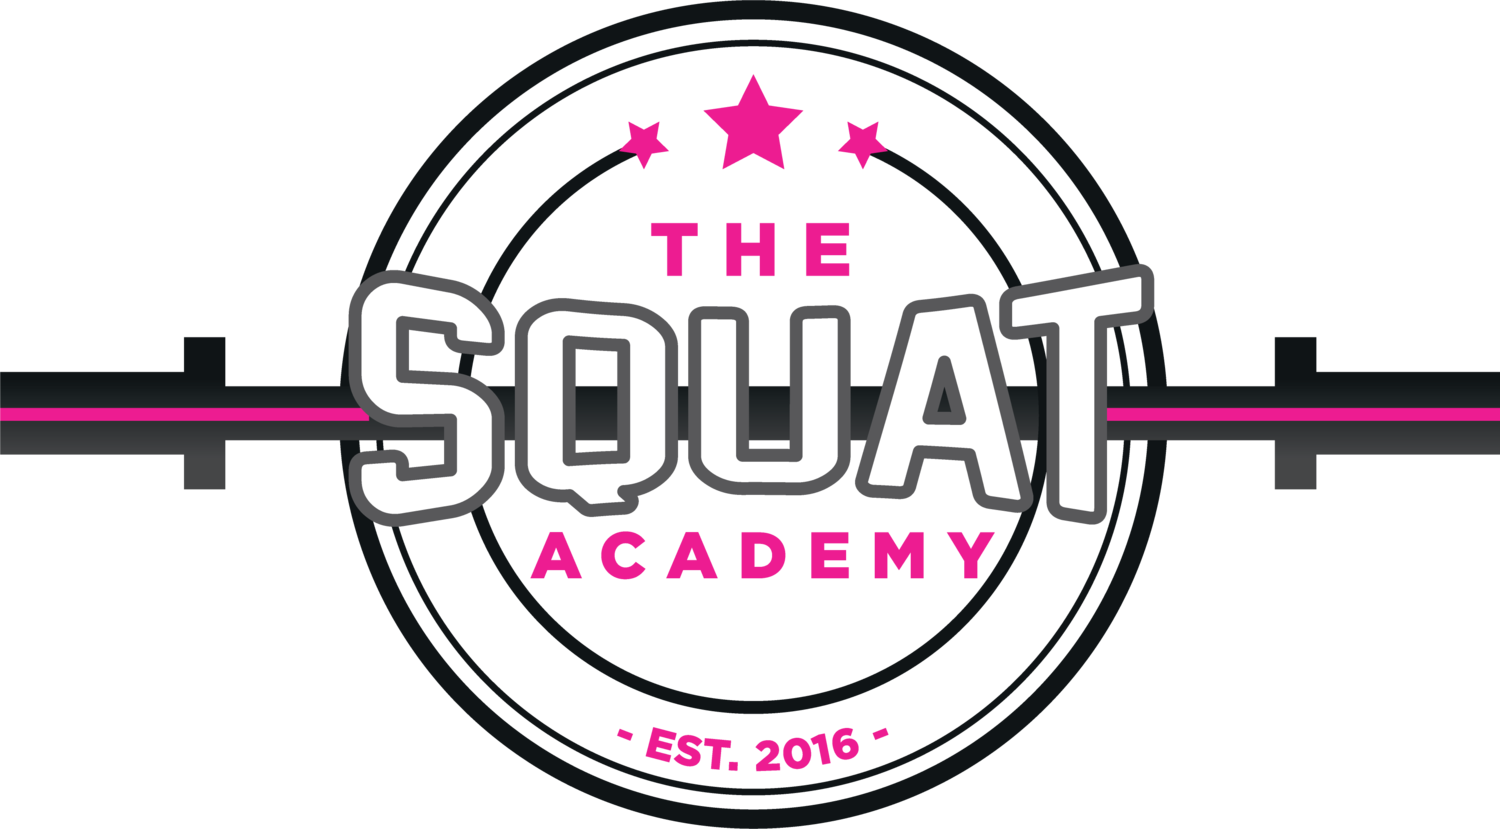 THE SQUAT ACADEMY | Manalapan, NJ | All Female Fitness Academy & Gym | Personal Training | Toning | Sculpting